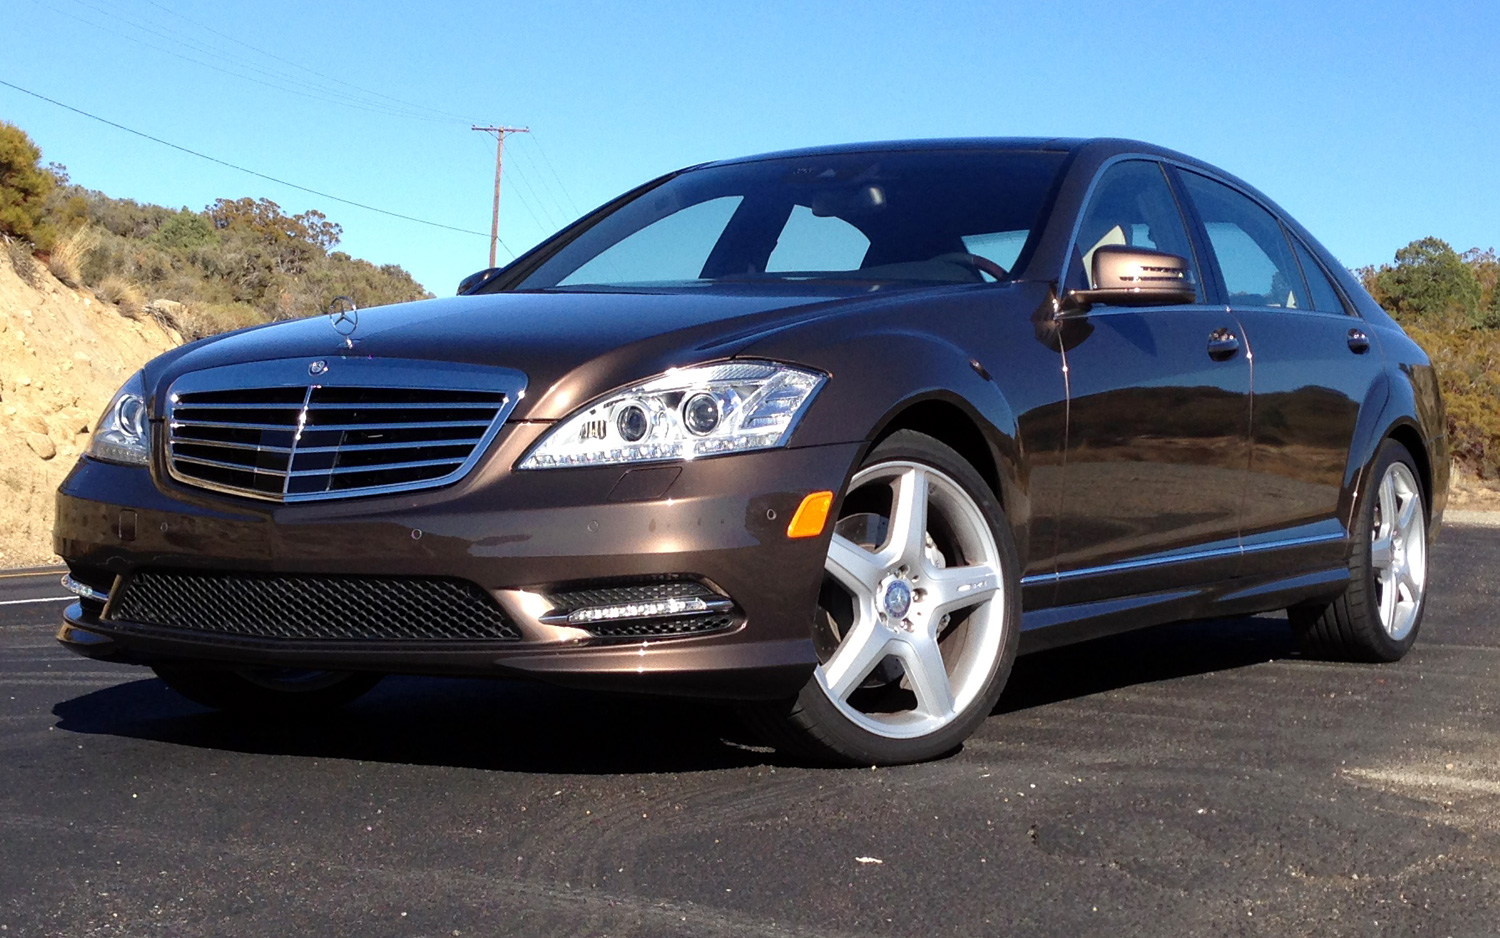 Mercedes benz s550 2013 review amazing pictures and for 2013 mercedes benz s550